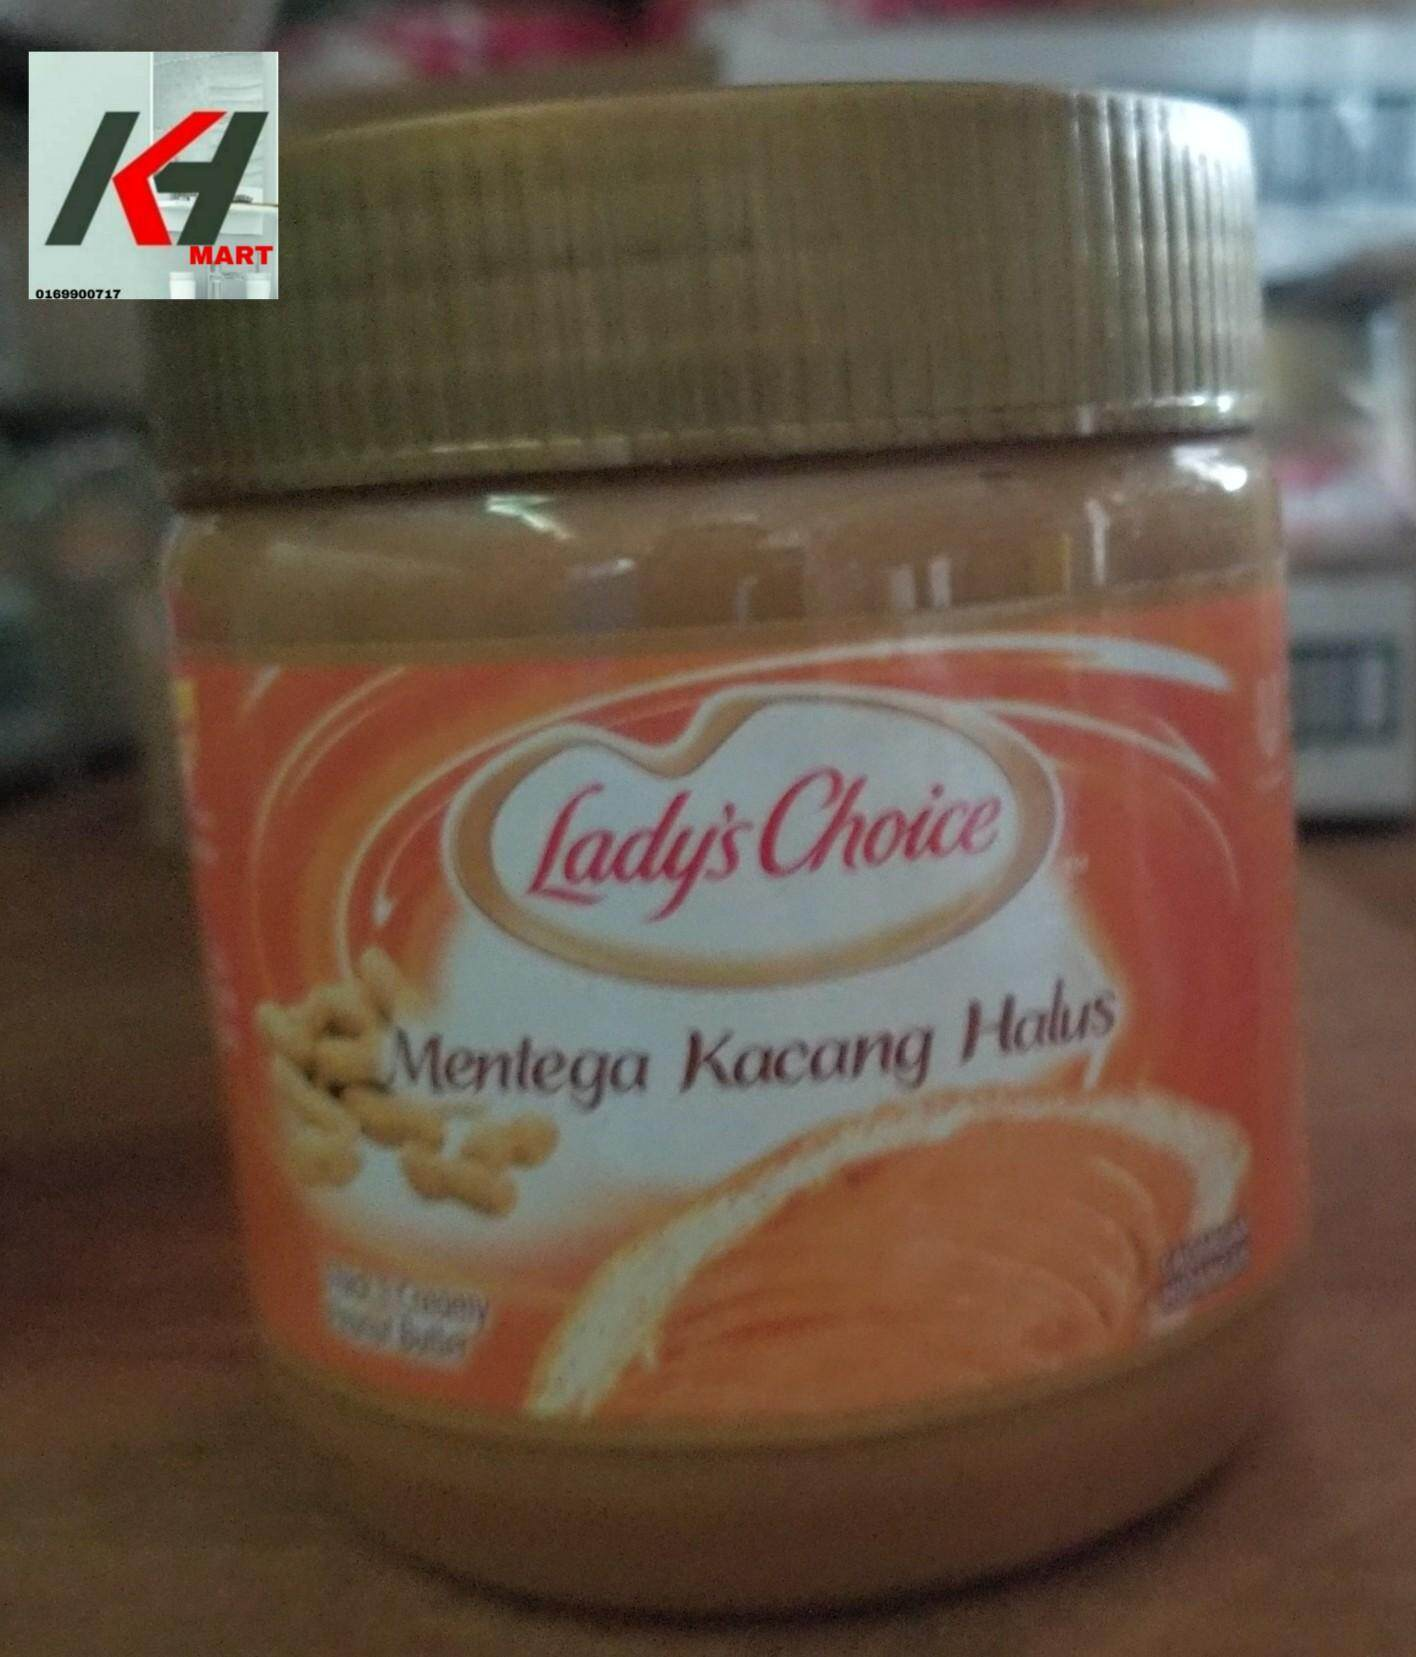 LADY'S CHOICE PEANUT BUTTER (KACANG HALUS) - 500G  READY STOCK